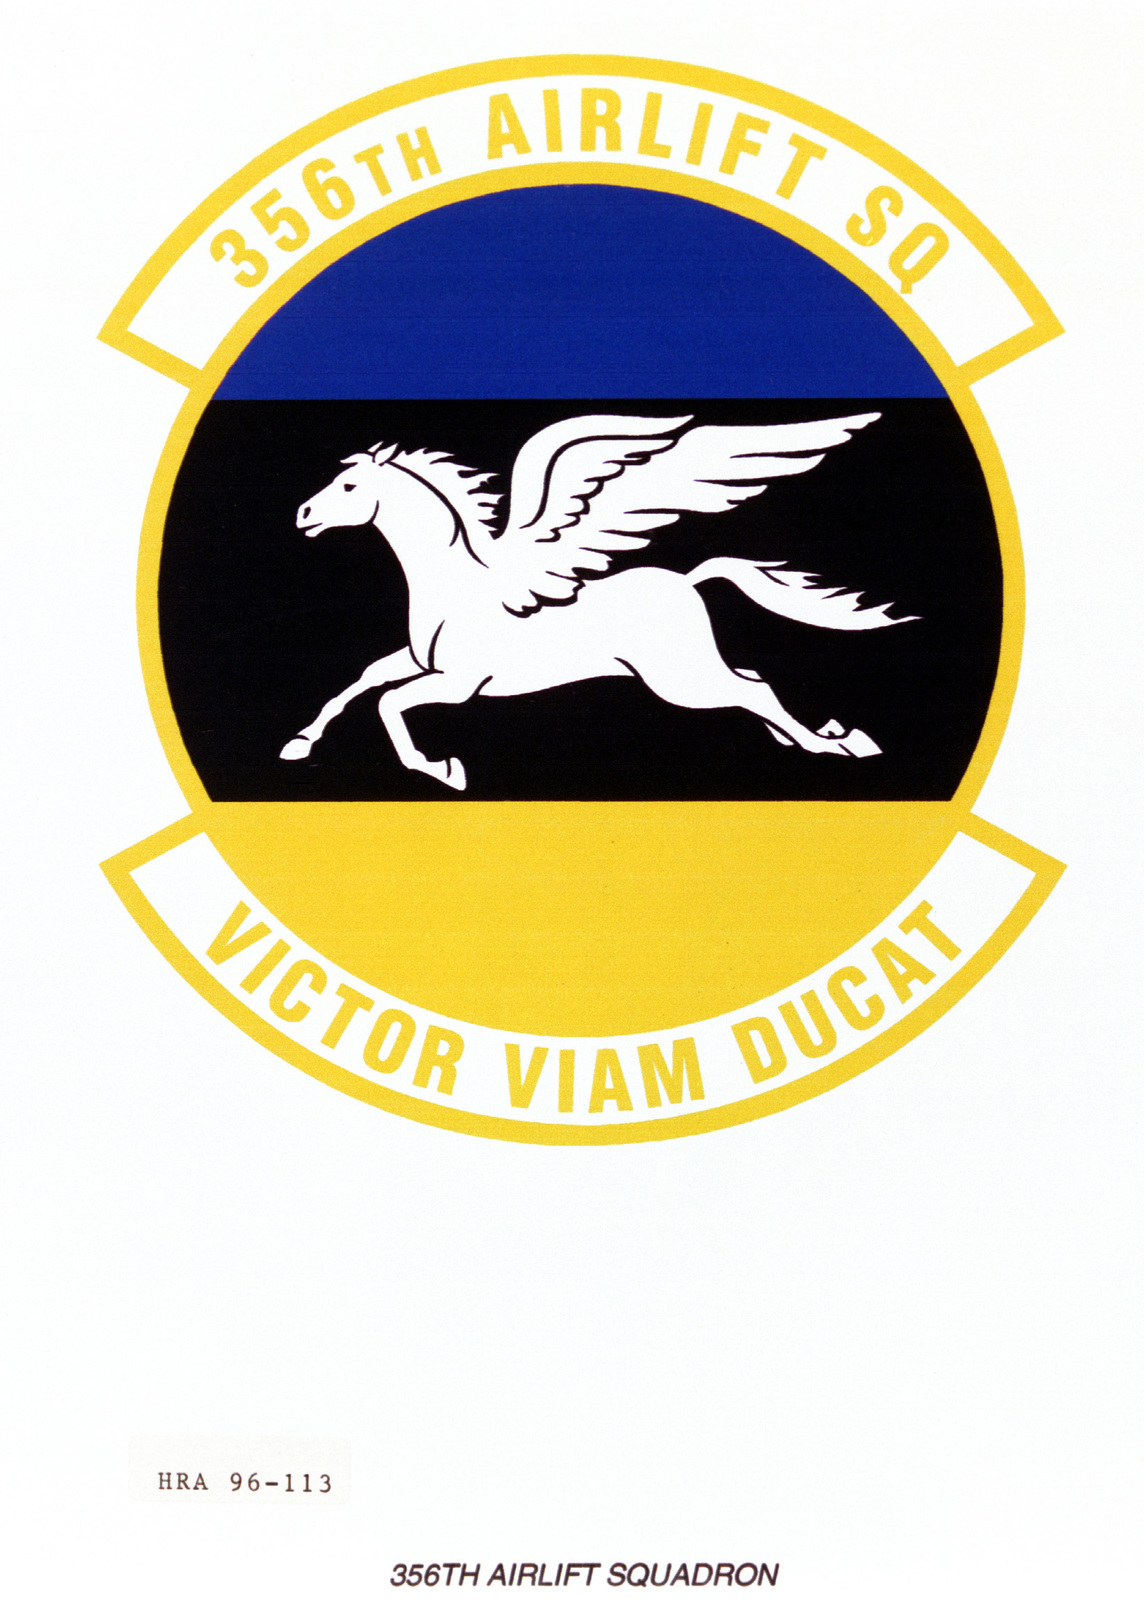 Air Force Organizational Emblem. 365th Airlift Squadron Exact Date Shot Unknown